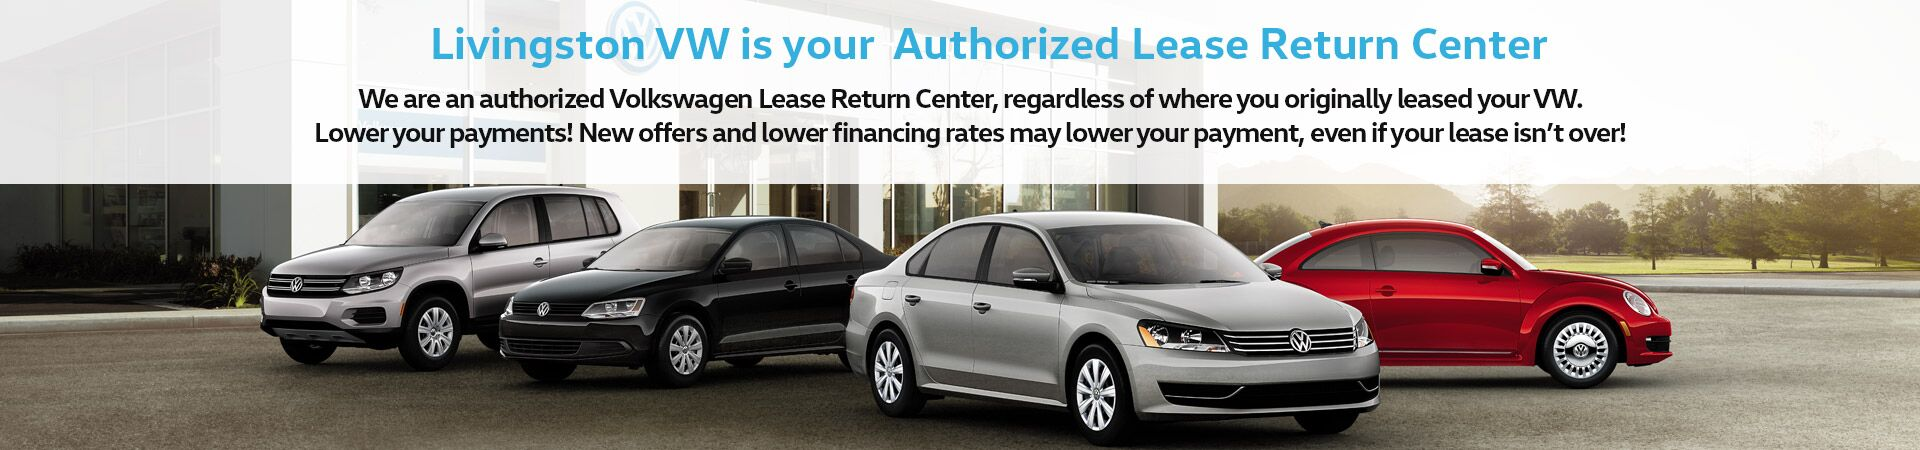 Livingston Volkswagen is an Authorized Lease Return Center